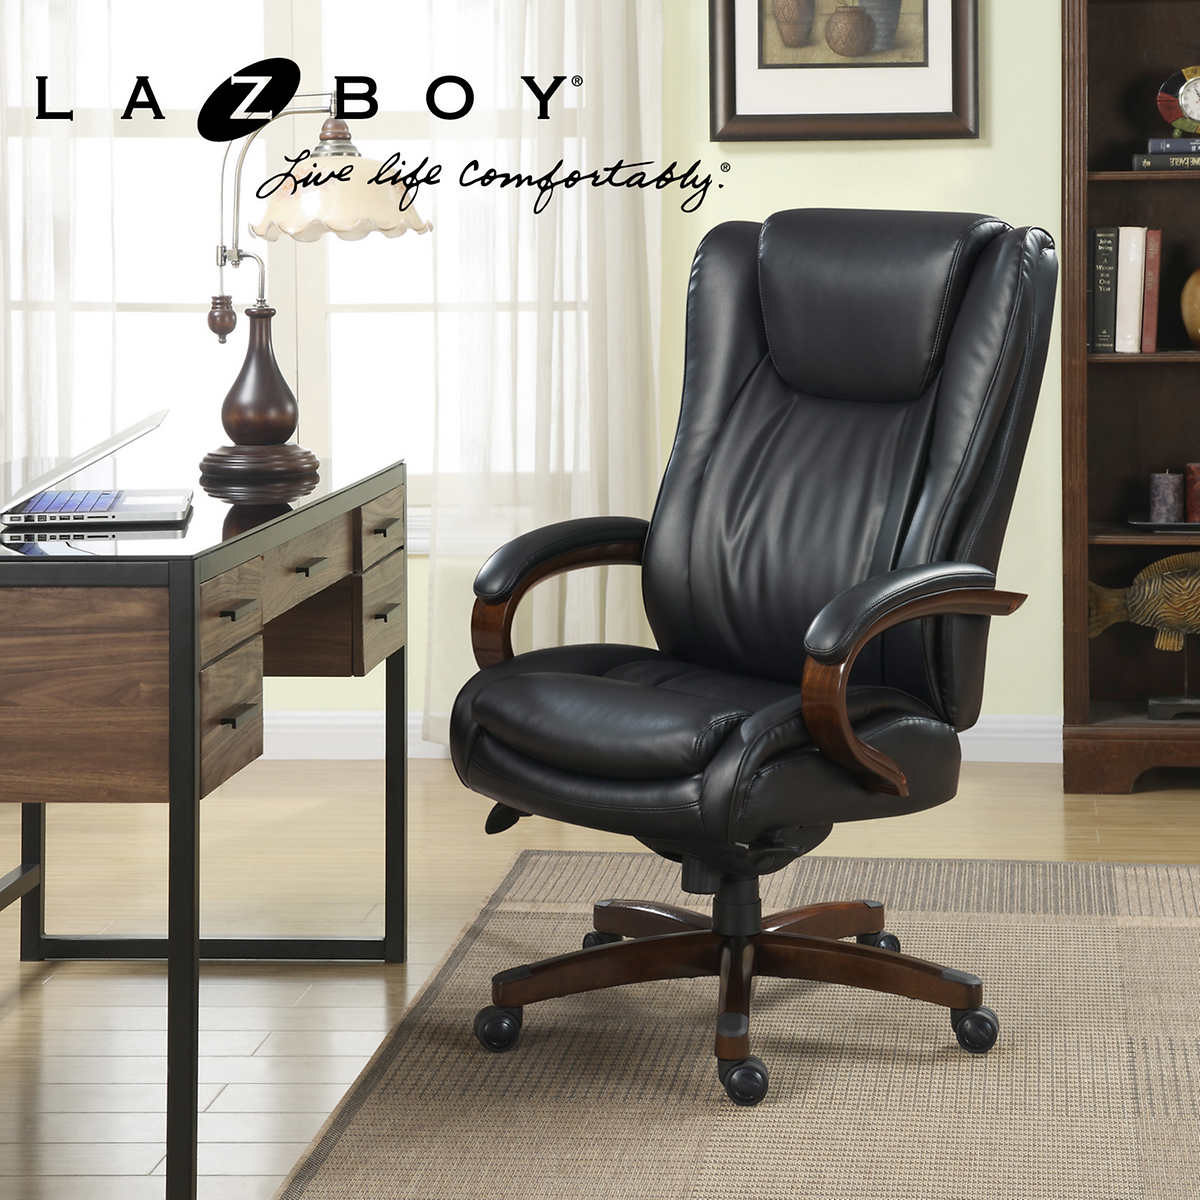 la-z-boy big & tall executive leather office chair